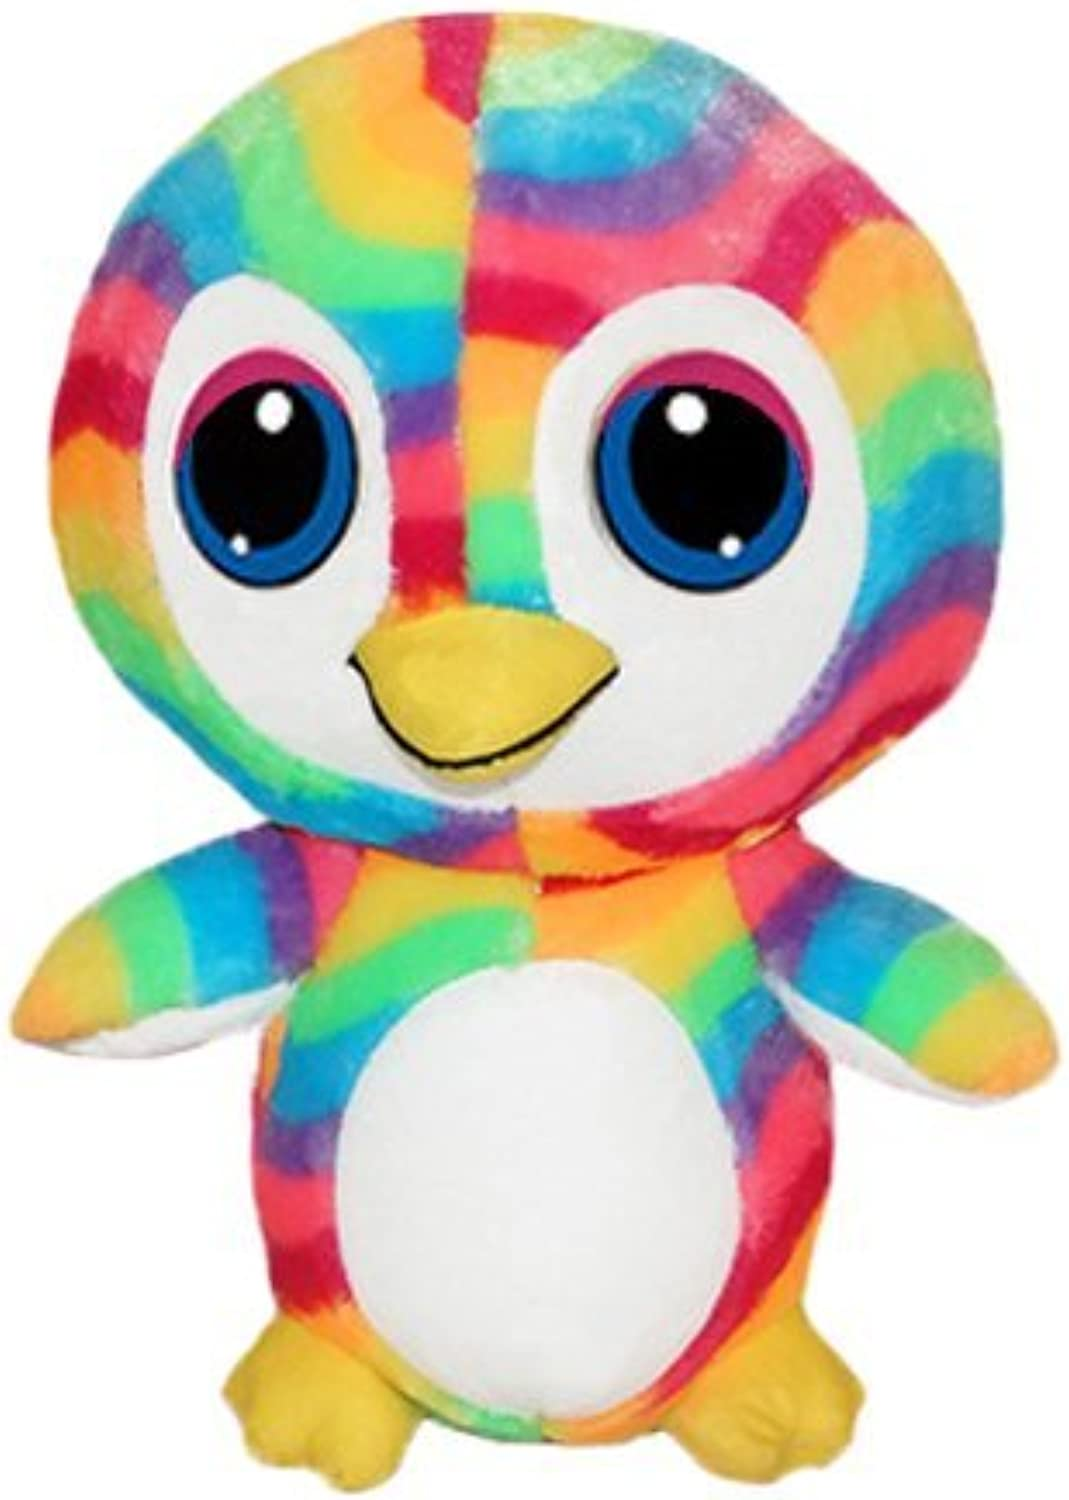 ToySource Rainbow Pink Toy, Collectible Plush 26 5 Penguin